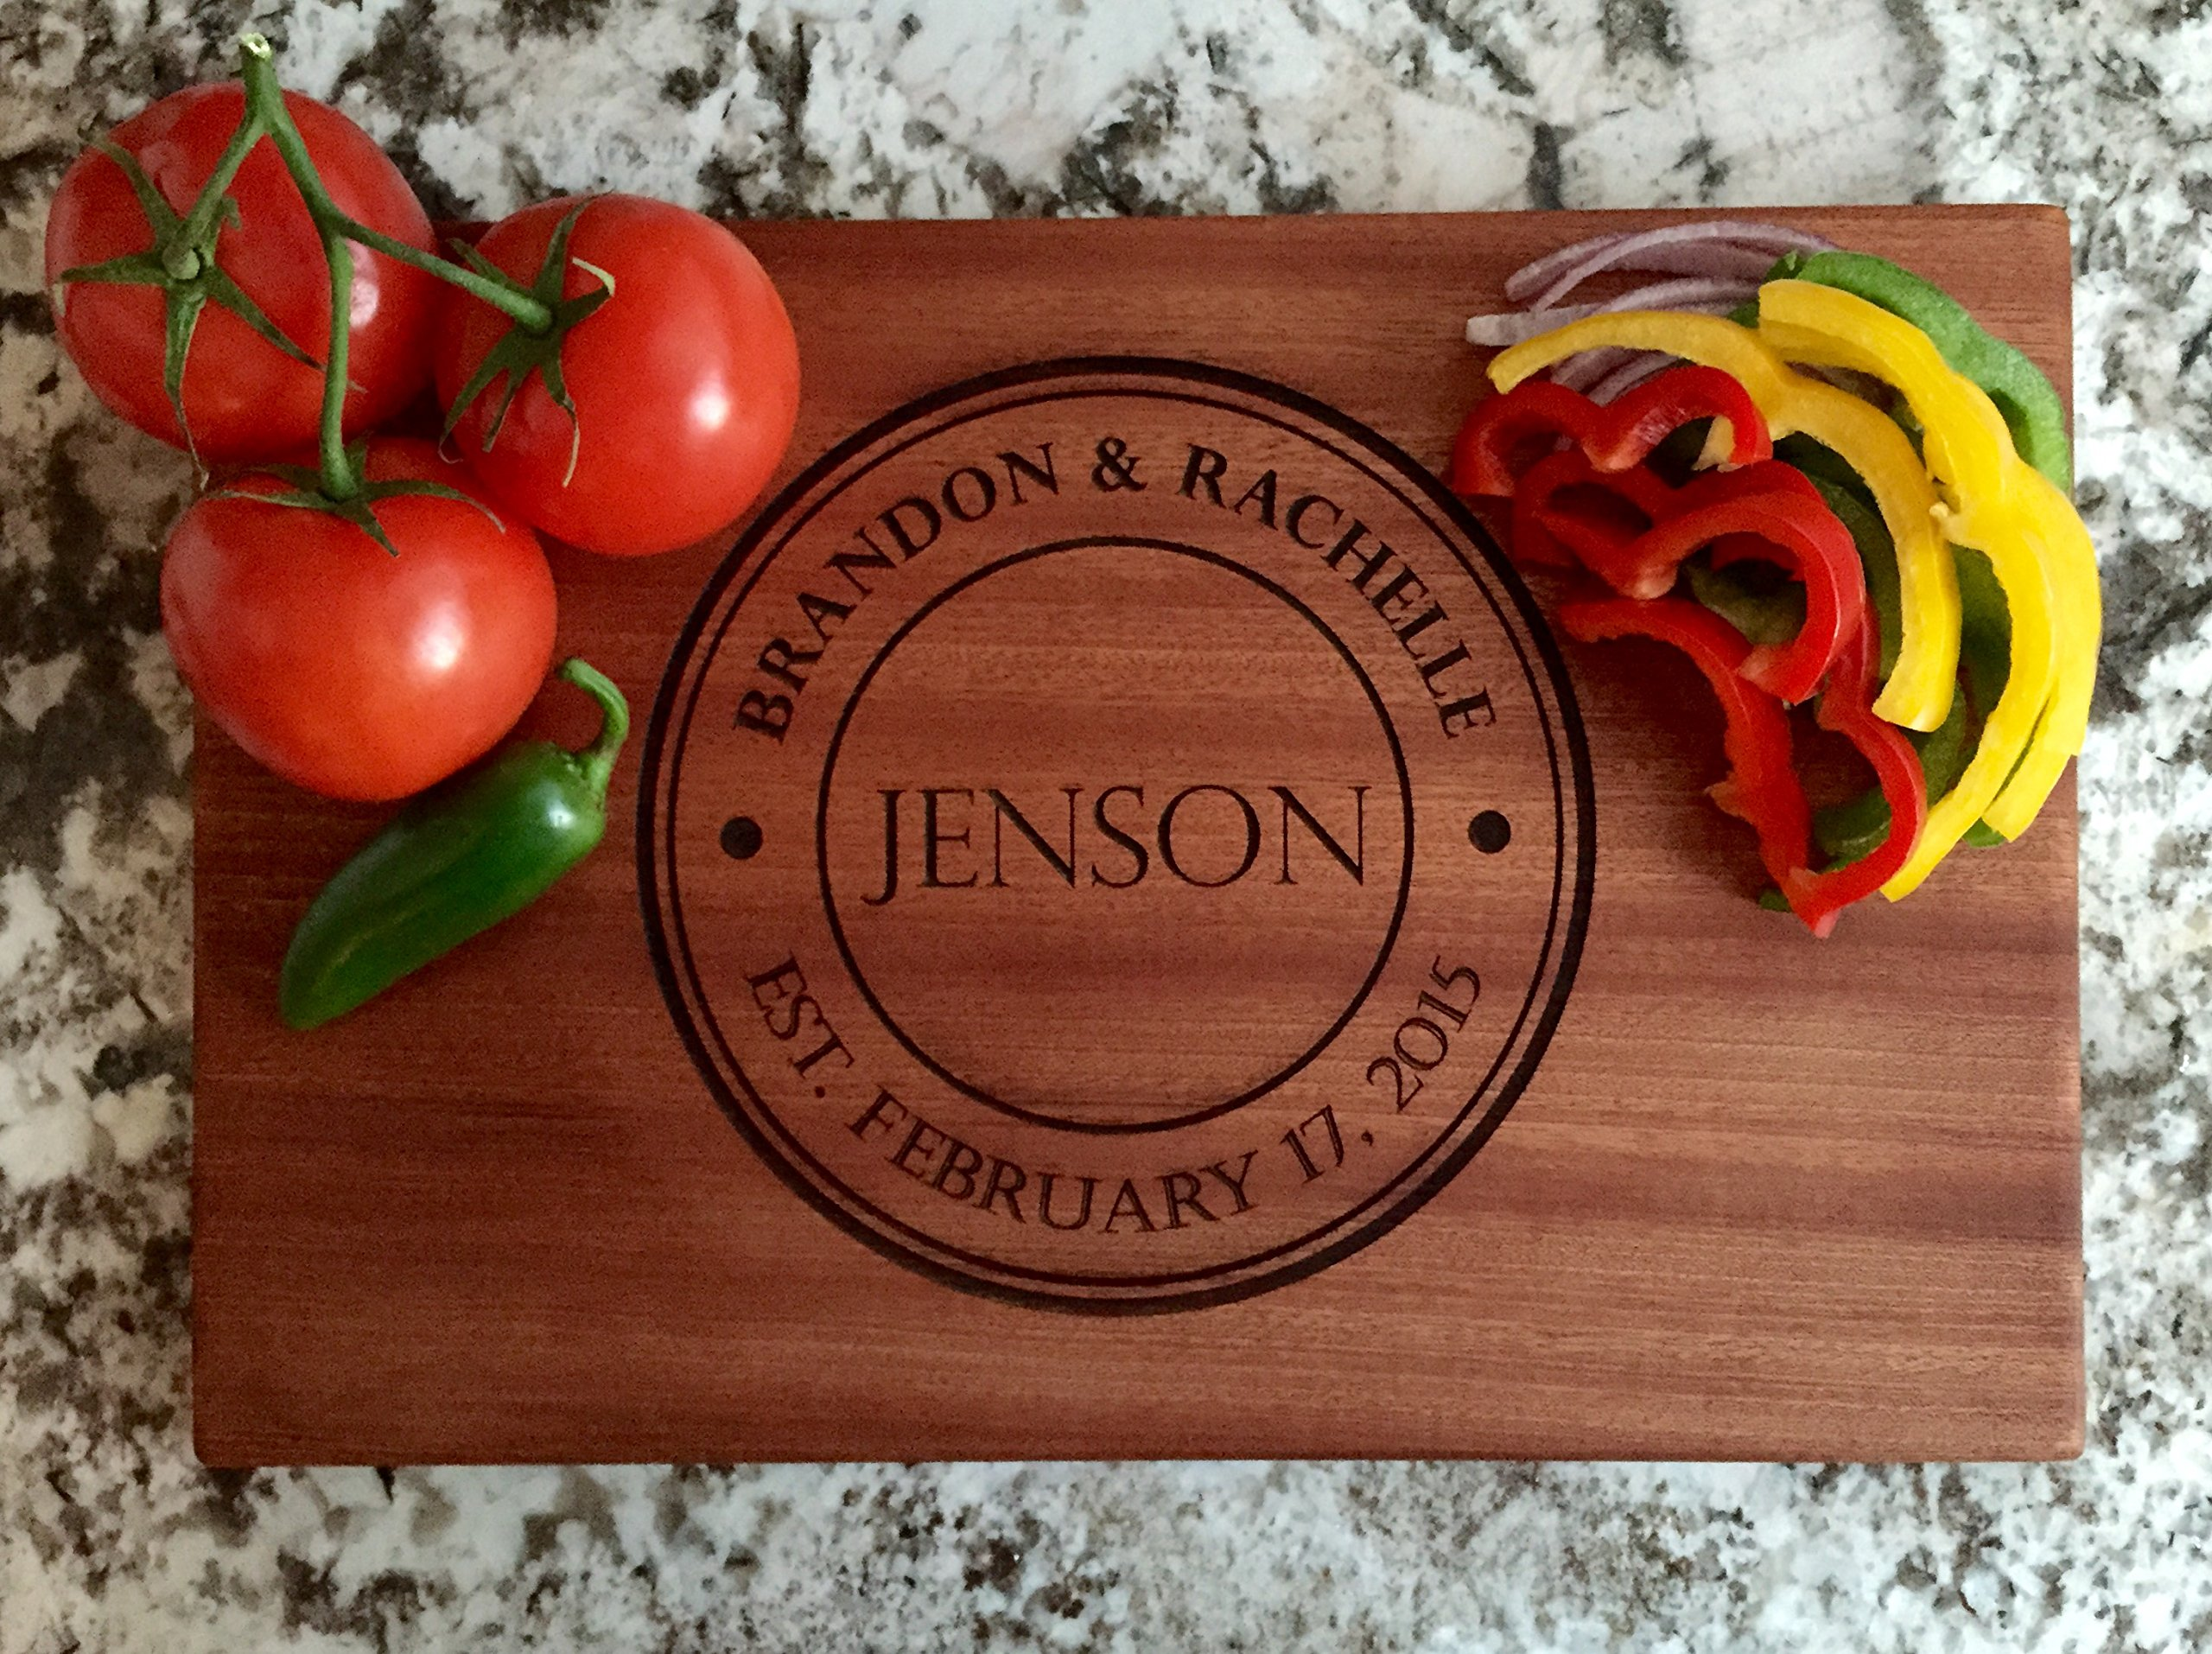 Personalized Gifts Couples Cutting Board - Wood Cutting Boards Bridal Shower, Housewarming, and Wedding Gifts (10 x 15 Mahogany Rectangular, Jenson Design)